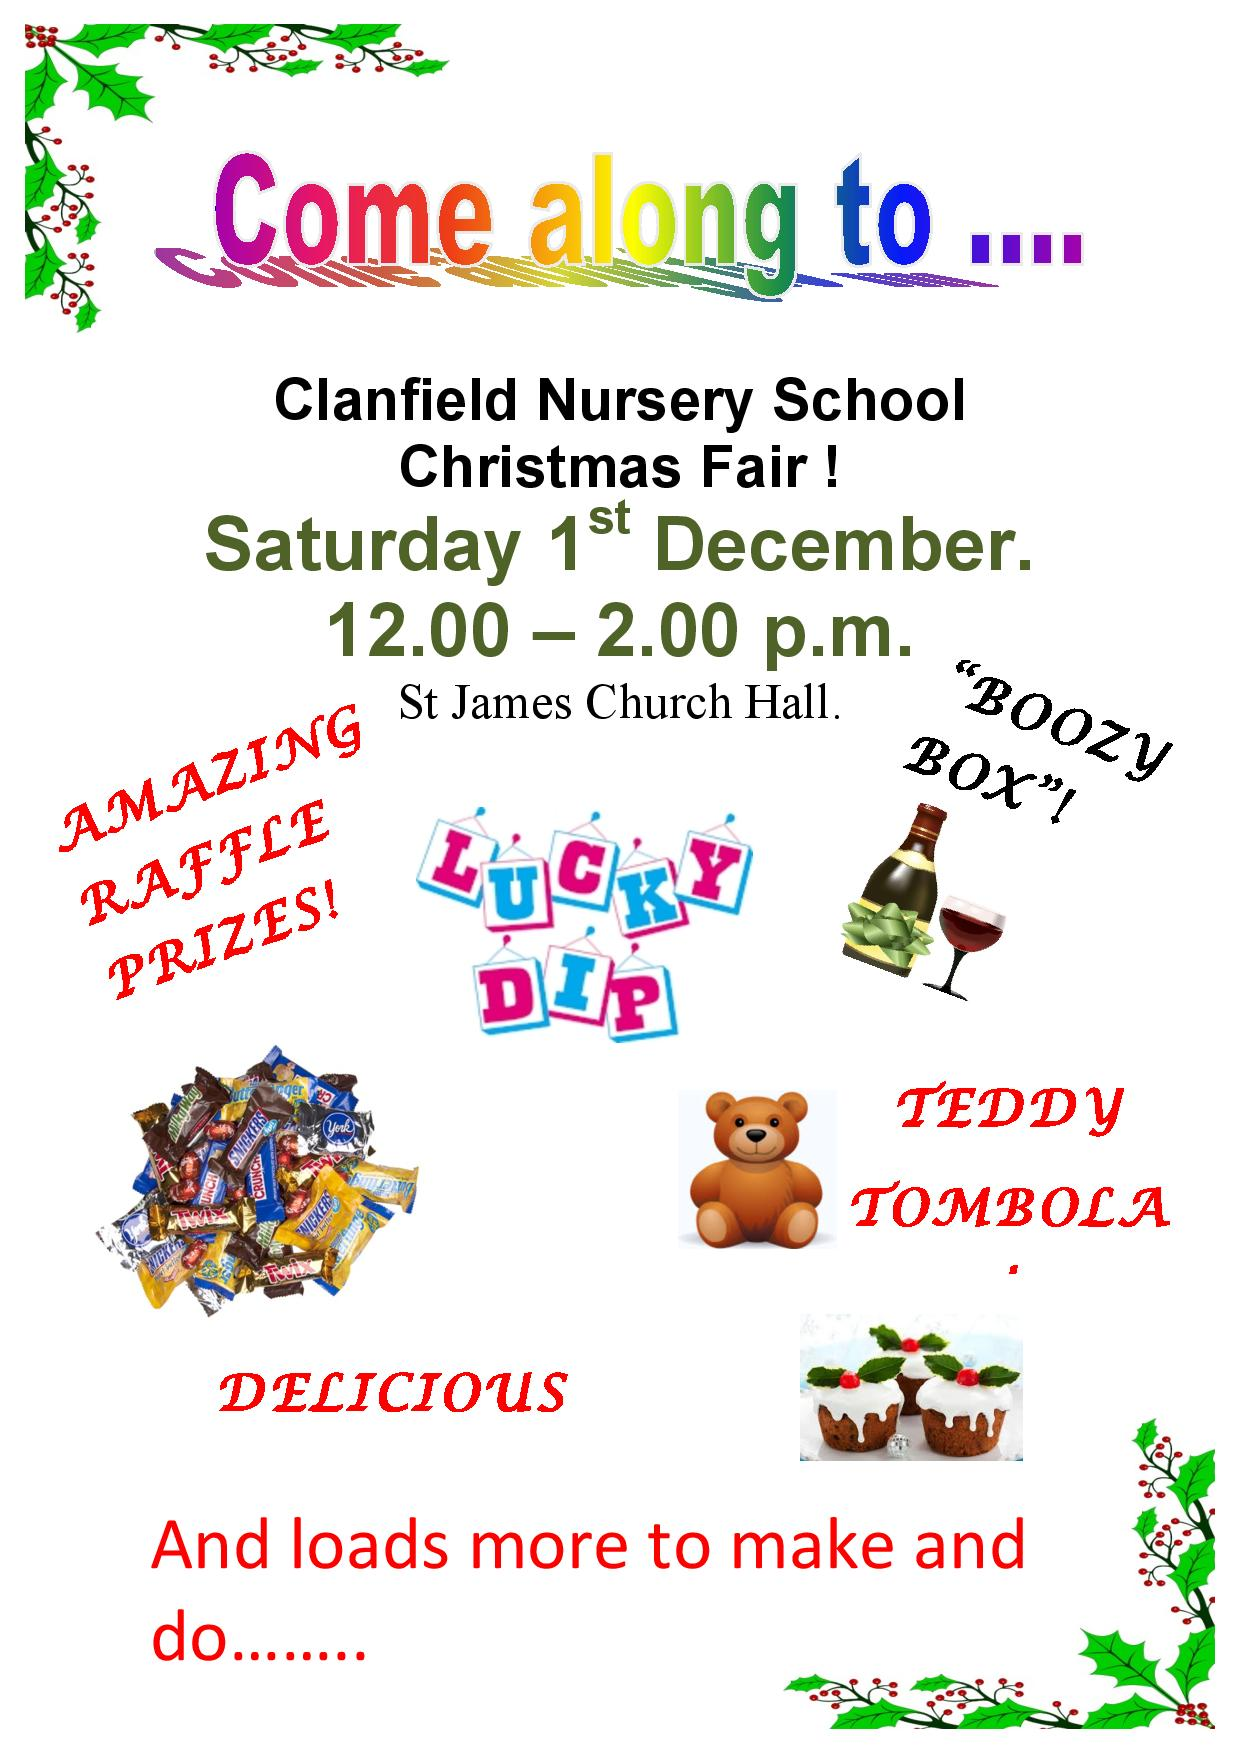 Clanfield Nursery School Christmas Fair